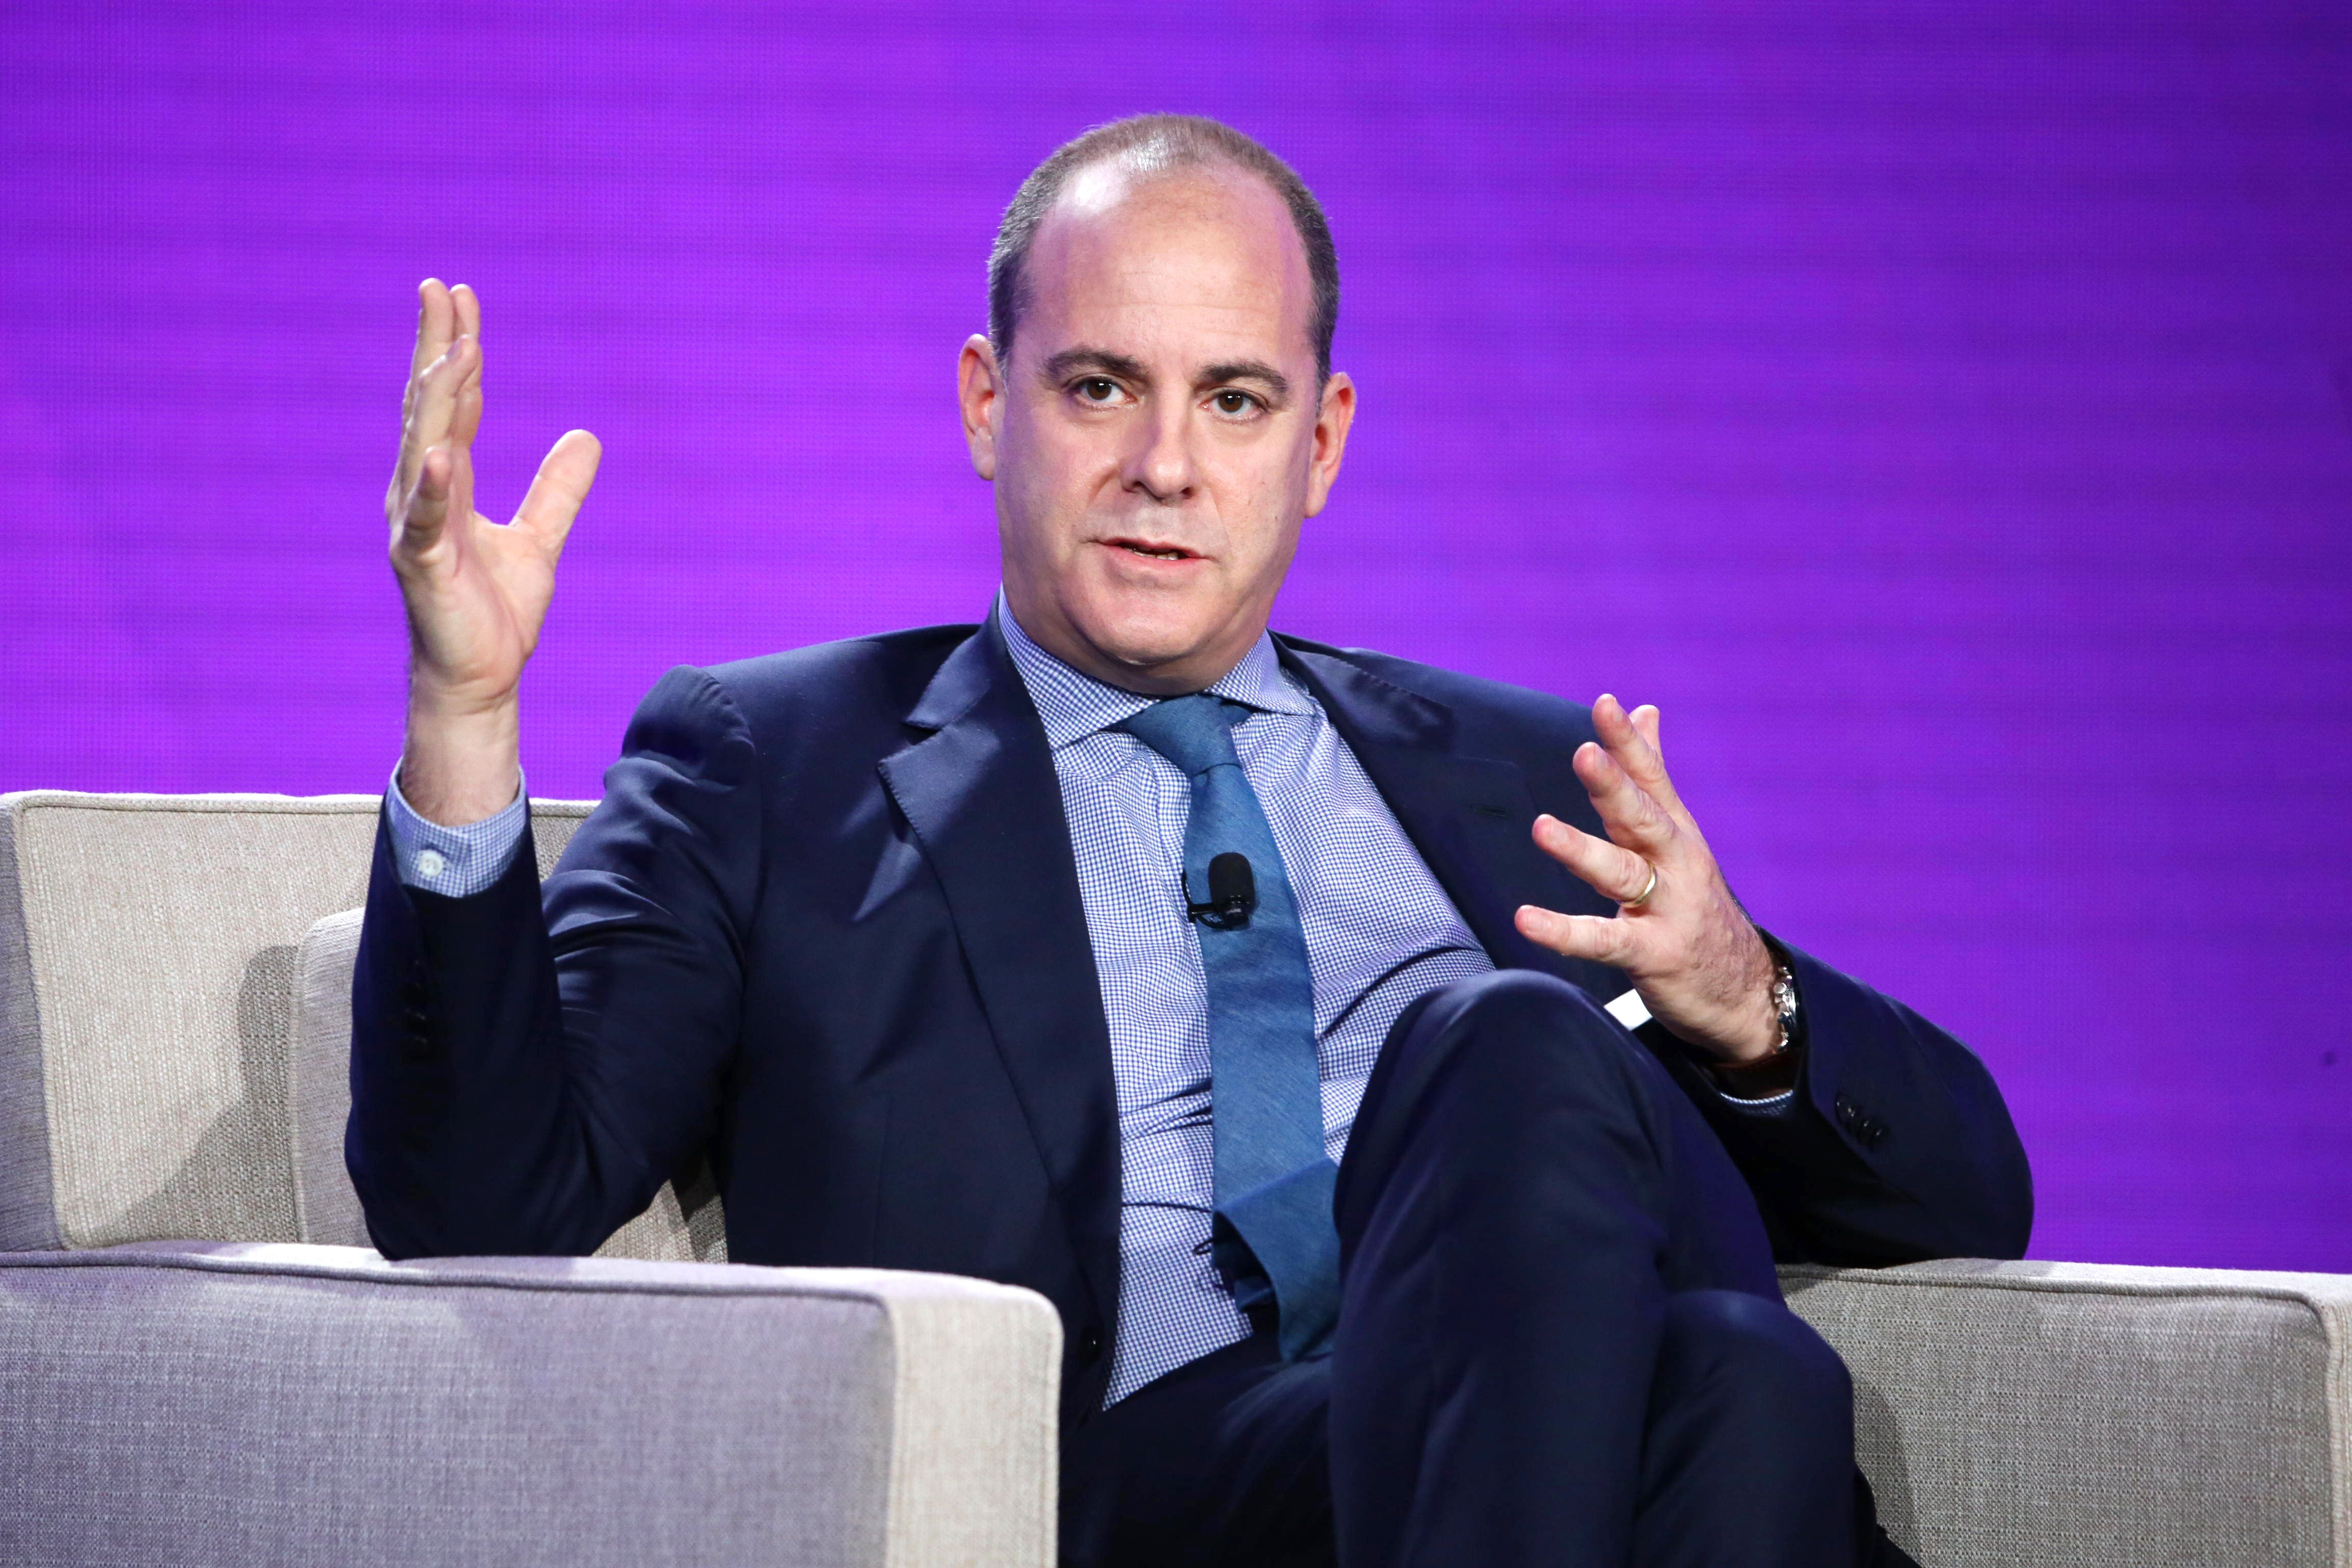 CBS Creative Chief David Nevins on His Plans to Compete With HBO Max